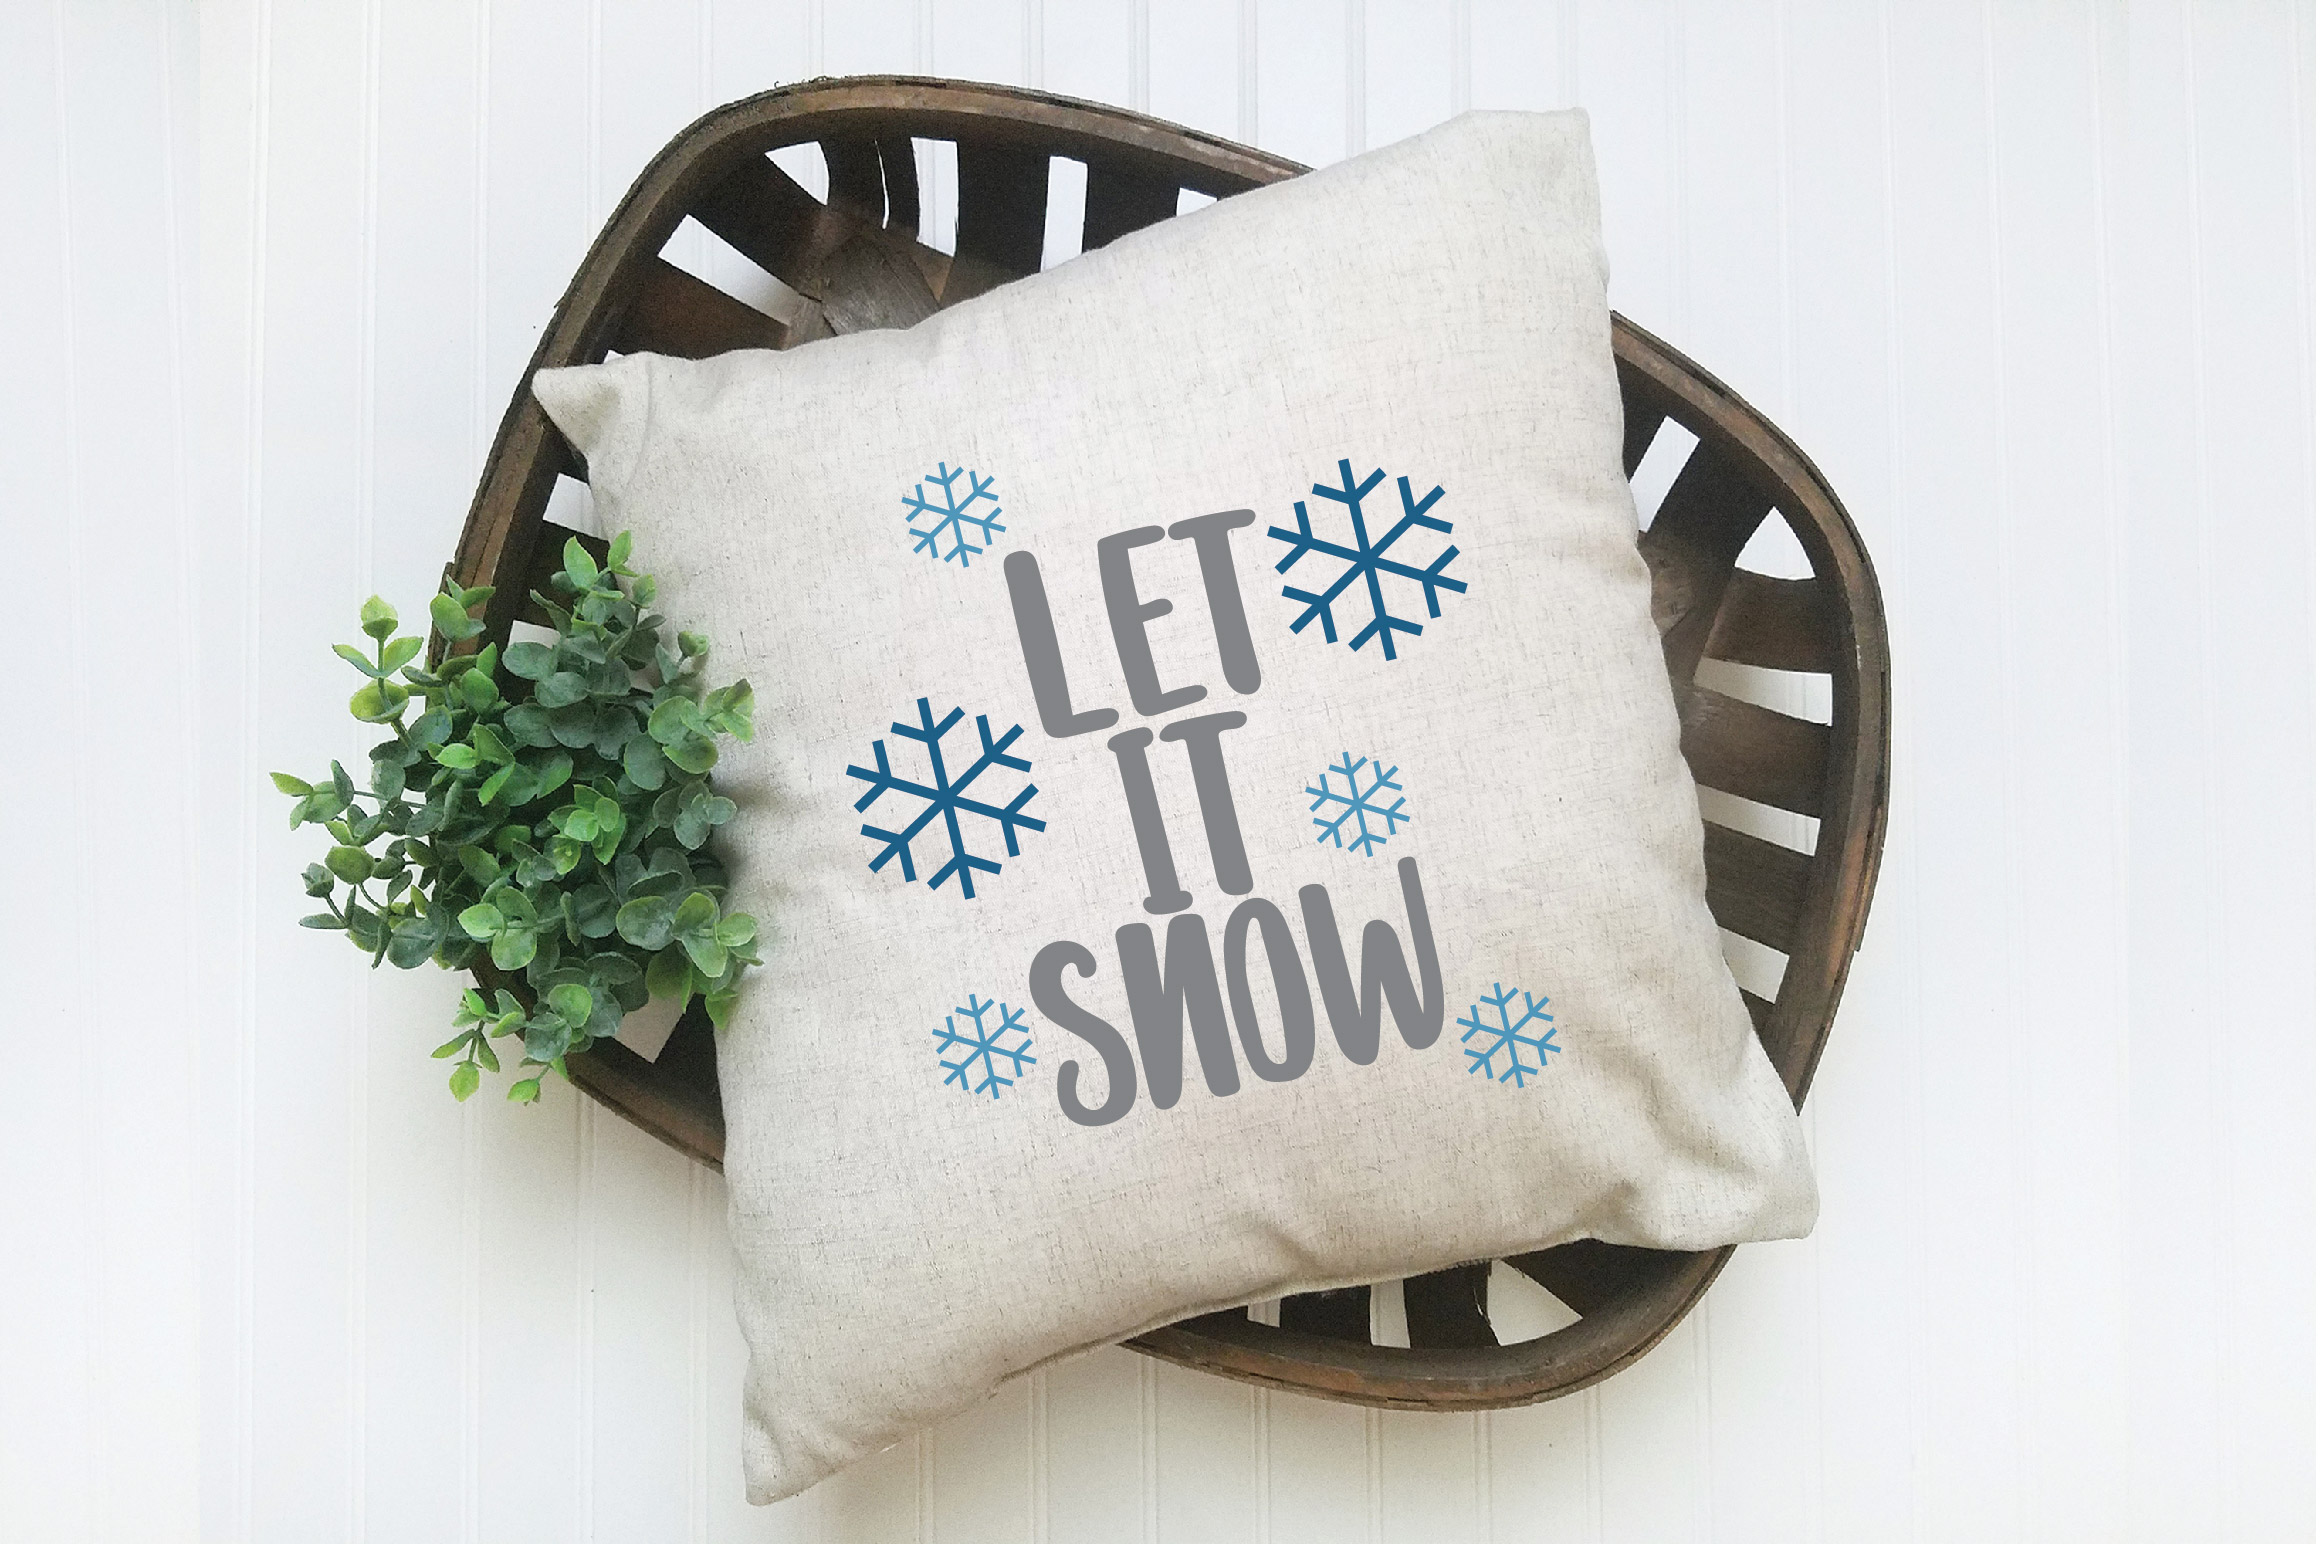 Let it Snow SVG Cut File - Christmas SVG example image 6